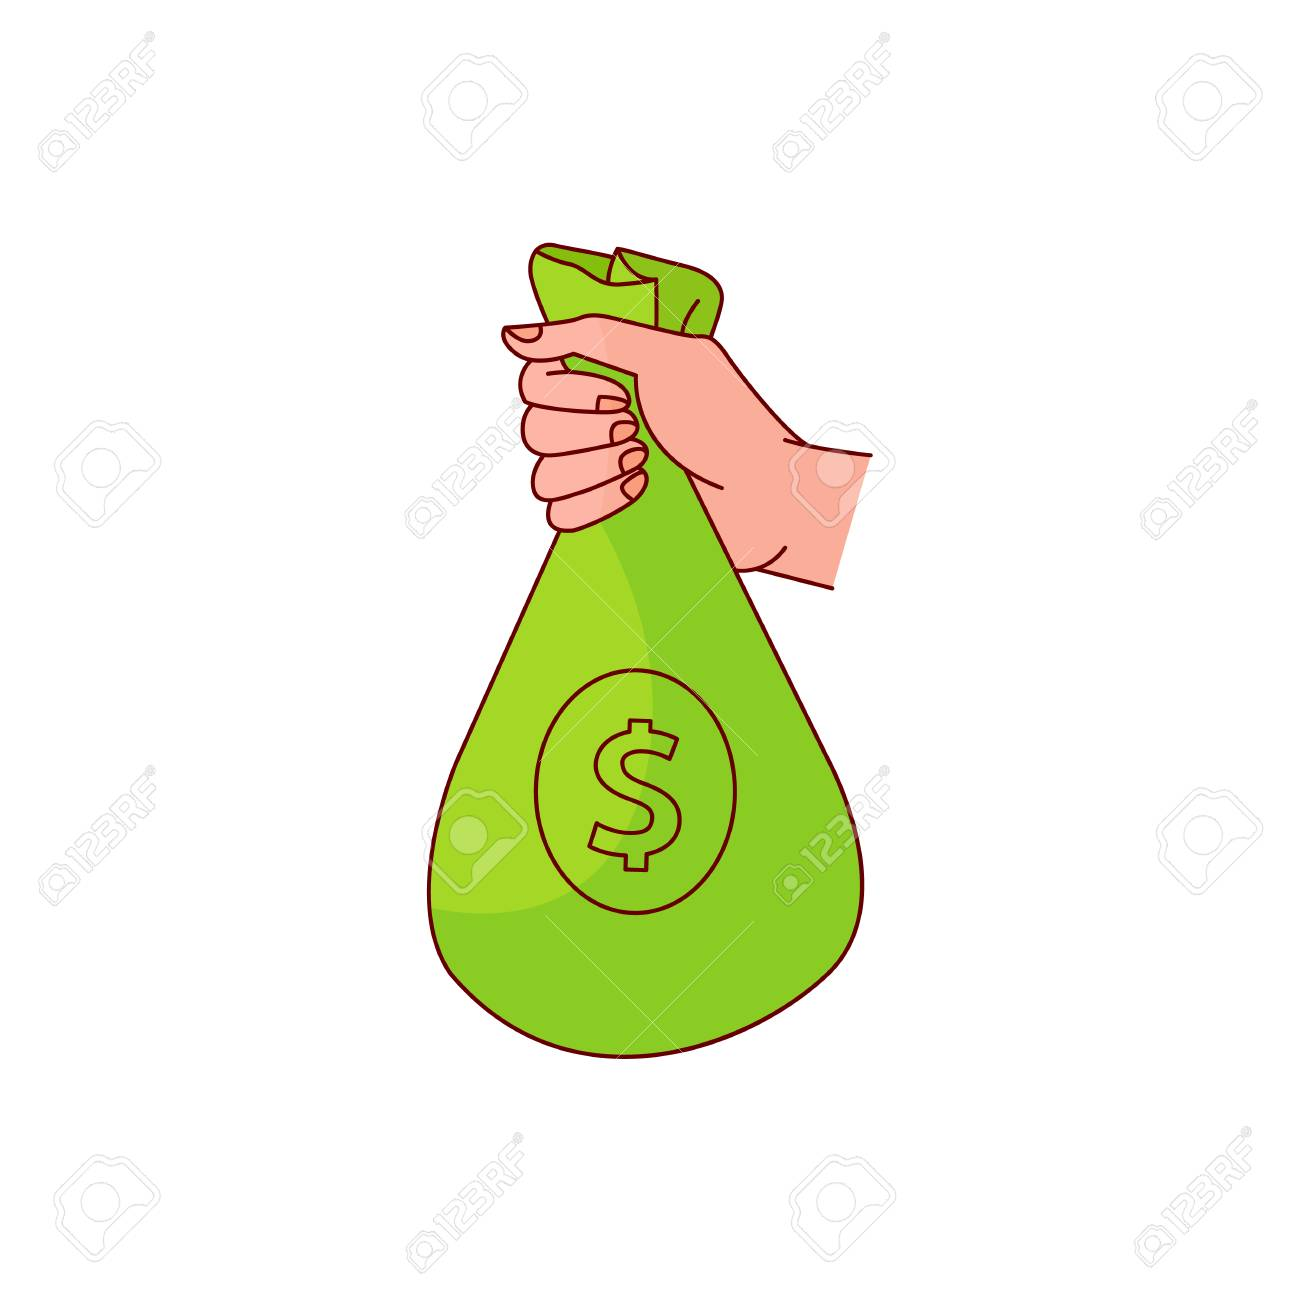 sketch man hand holding green bag with dollar sign icon  Bag